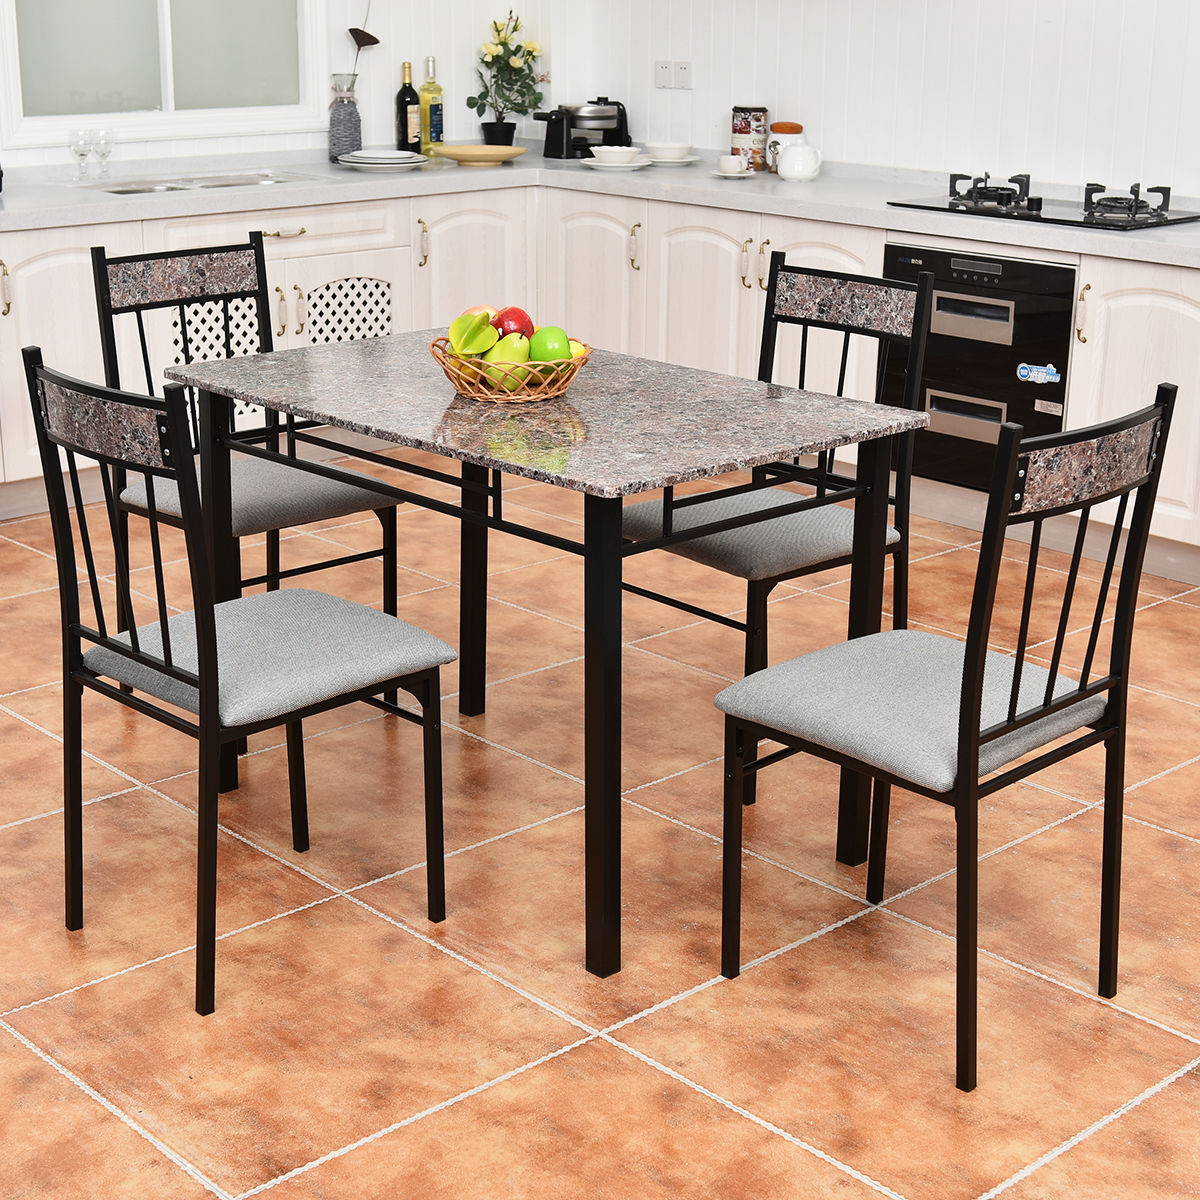 chairs for kitchen surplus cabinets 5 pcsfaux marble dining set table and 4 breakfast furniture